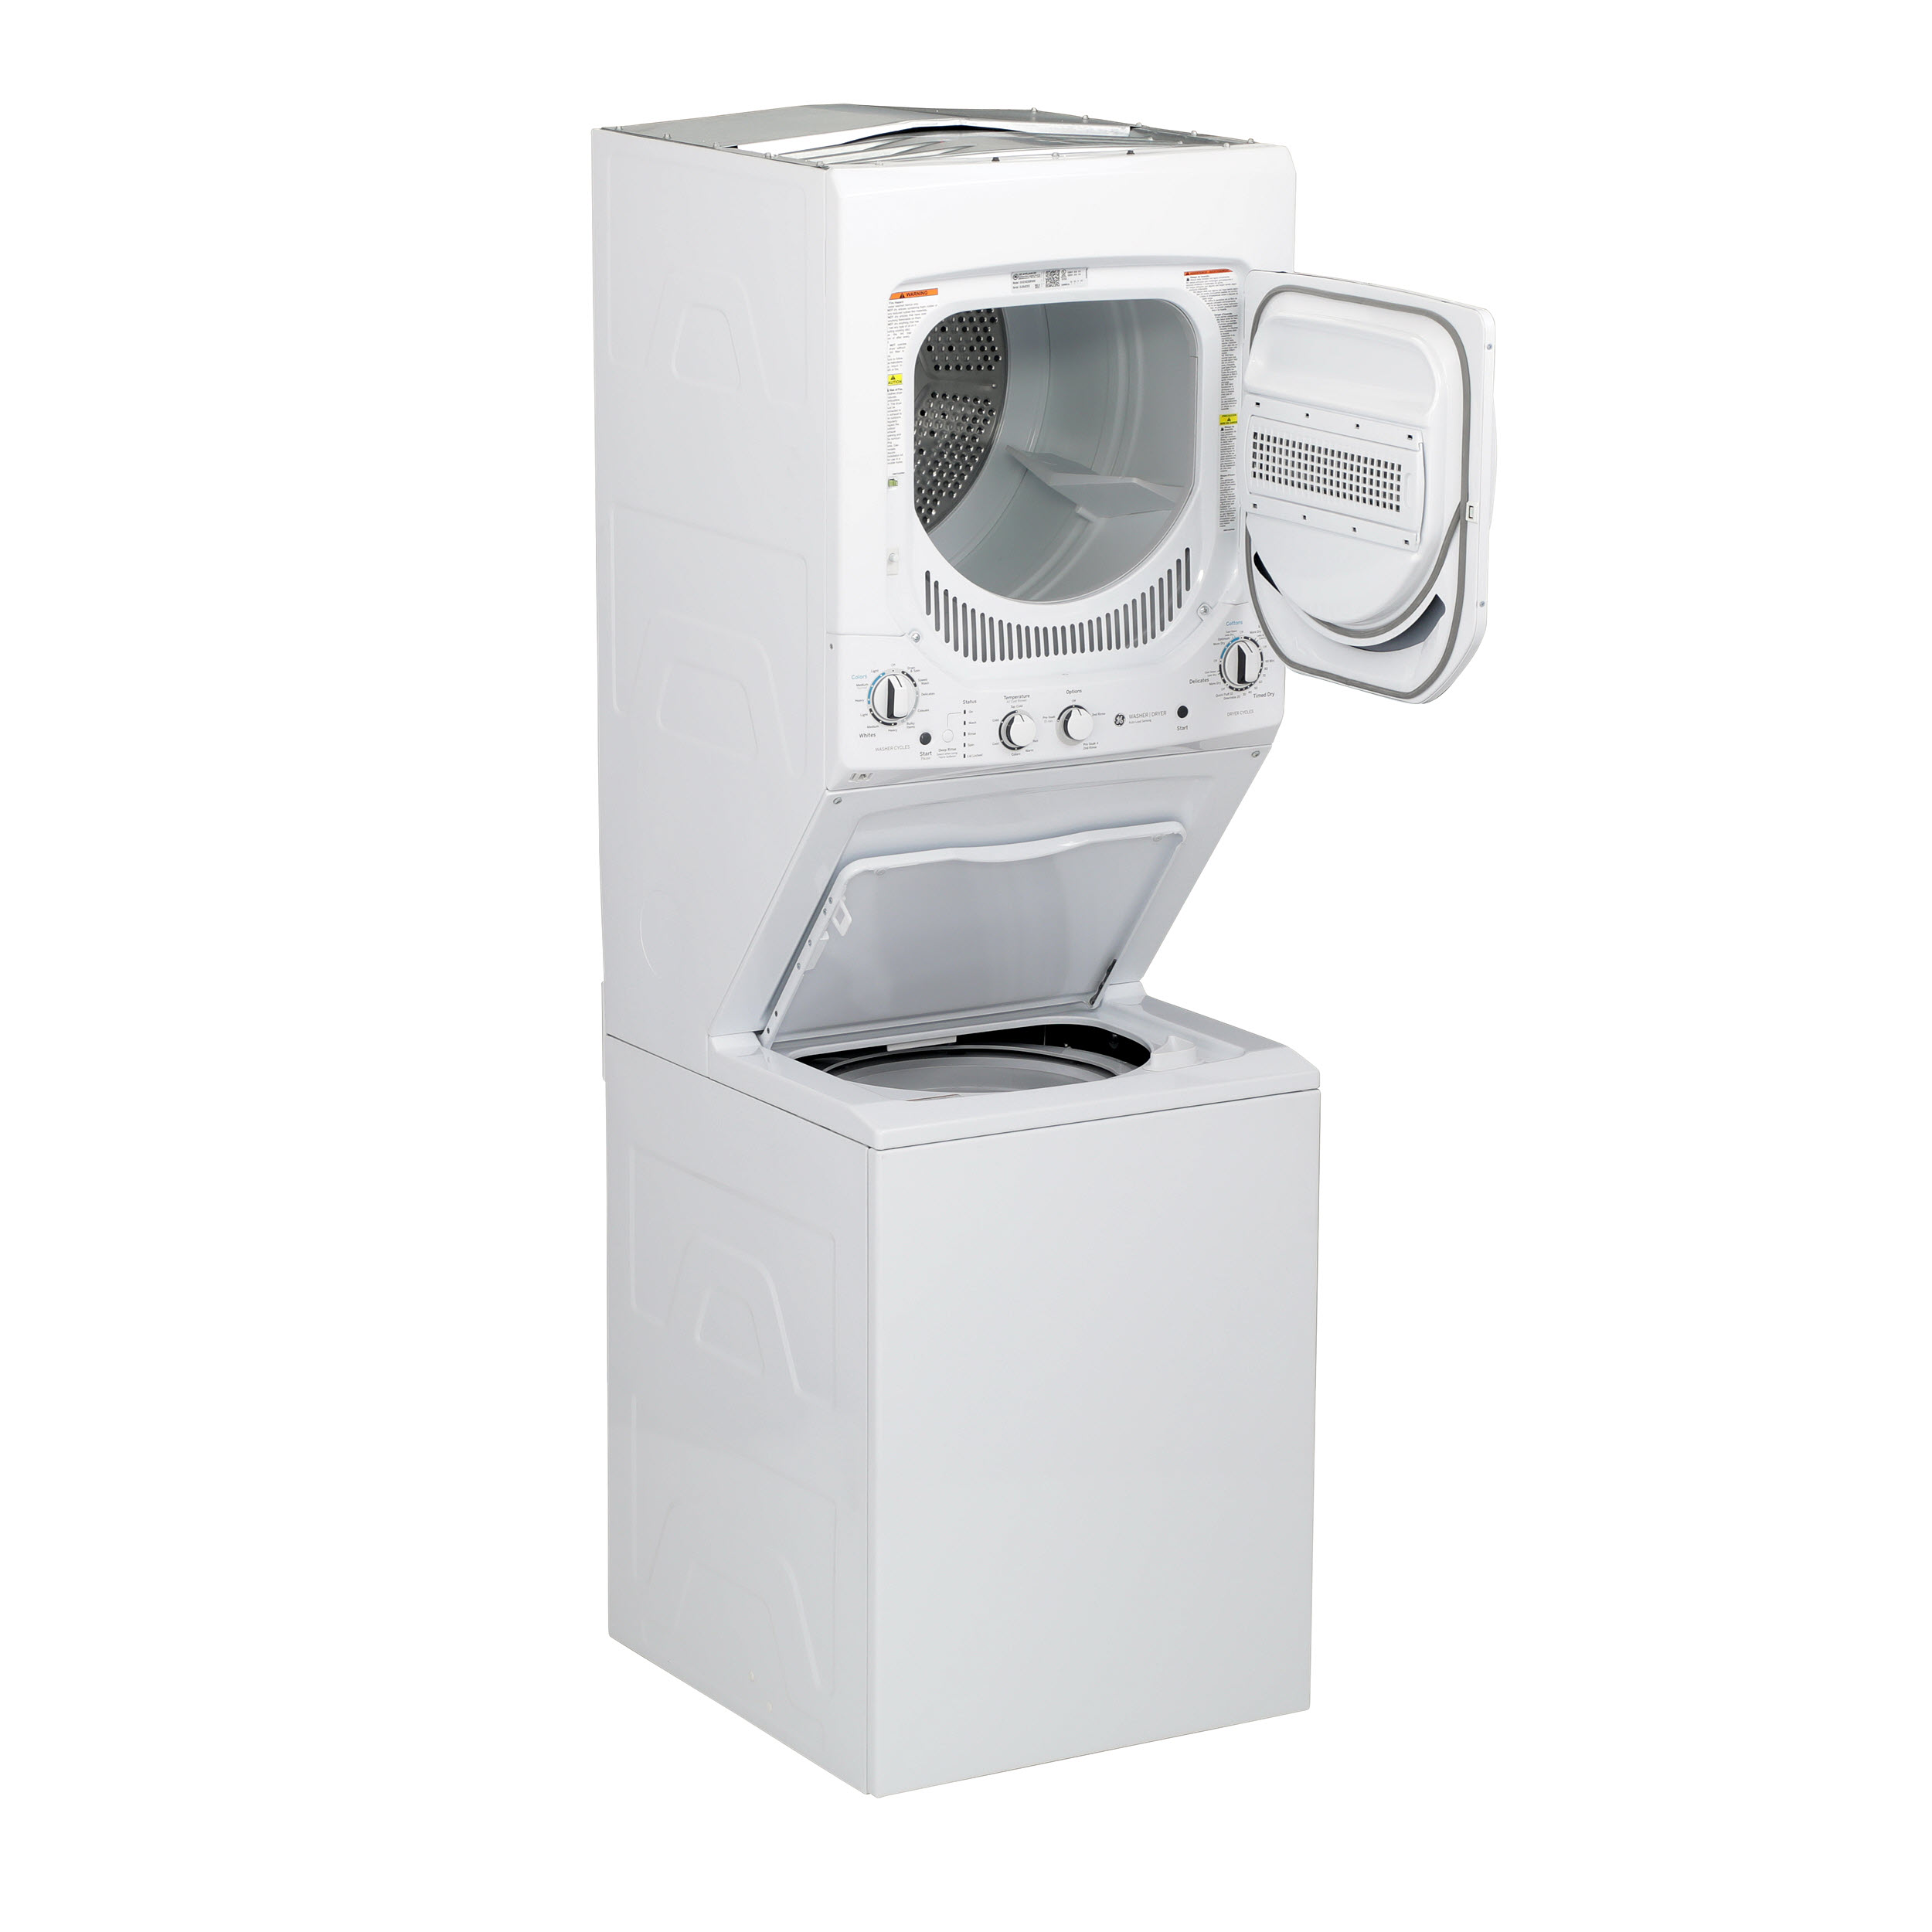 Model: GUD24ESSMWW | GE GE Unitized Spacemaker® 2.3 cu. ft. Capacity Washer with Stainless Steel Basket and 4.4 cu. ft. Capacity Electric Dryer